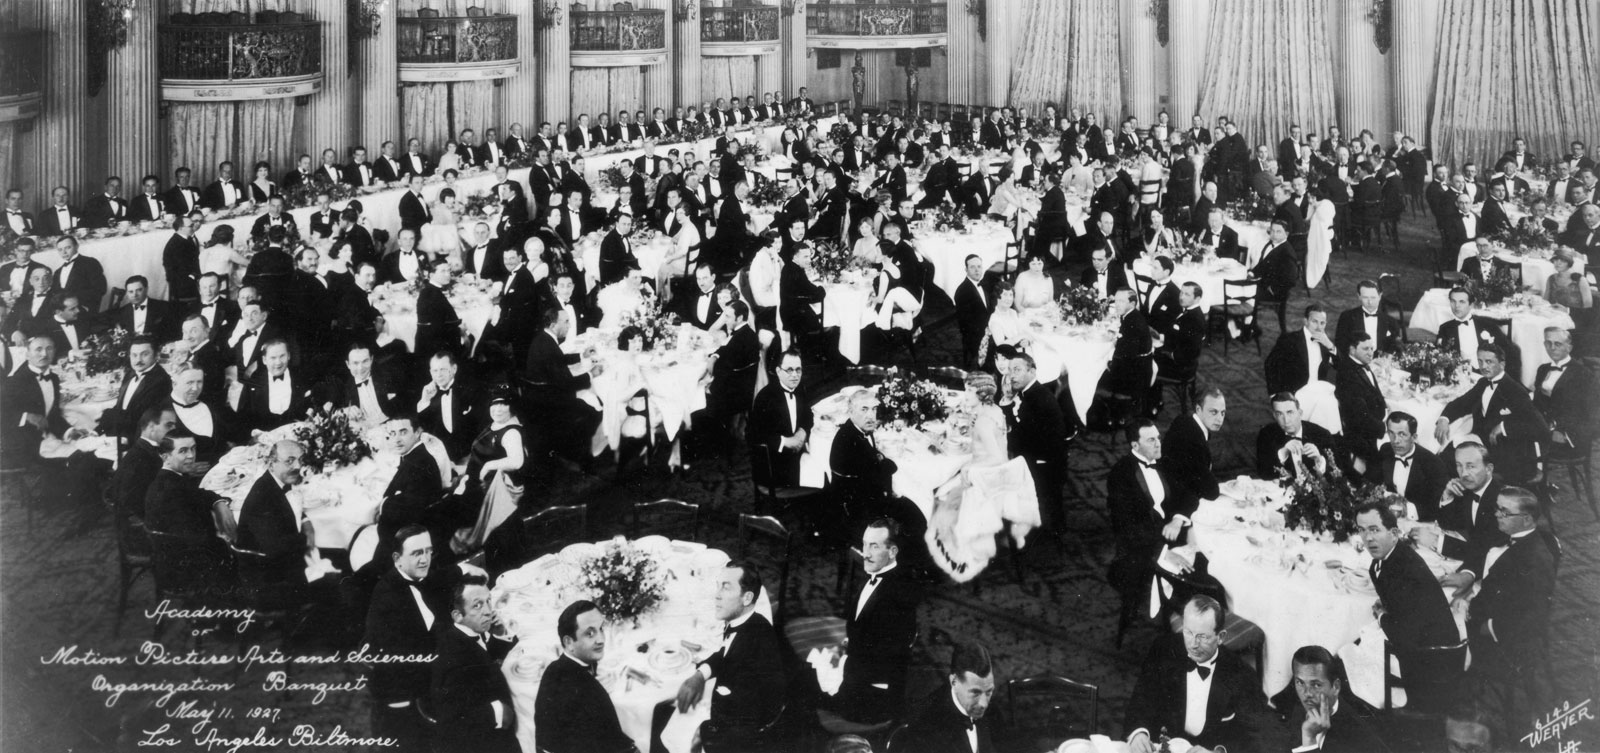 January 11 – Louis B. Mayer, head of film studio Metro-Goldwyn-Mayer (MGM), announces the creation of the Academy of Motion Picture Arts and Sciences, at a banquet in Los Angeles, California